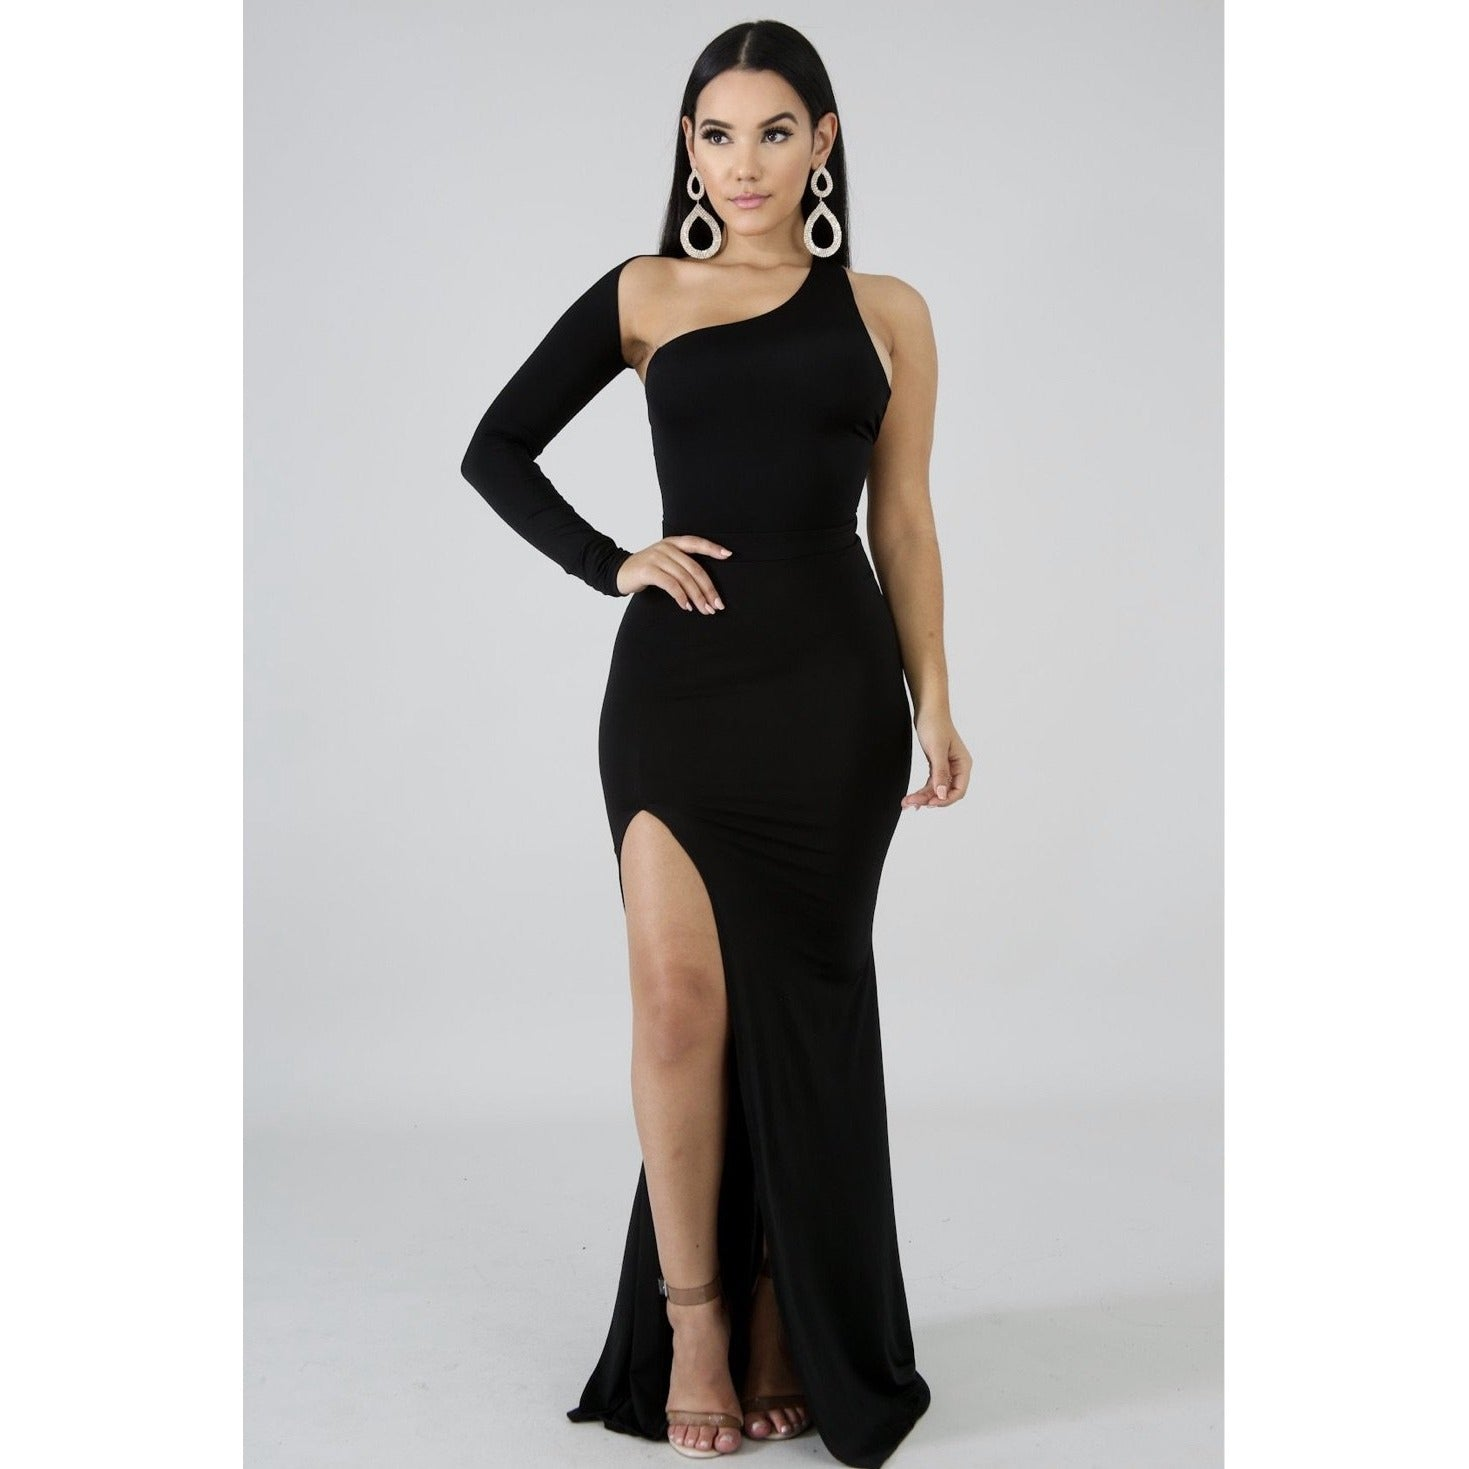 She Makes A Statement Slit Maxi Dress - Glam Luxe Couture